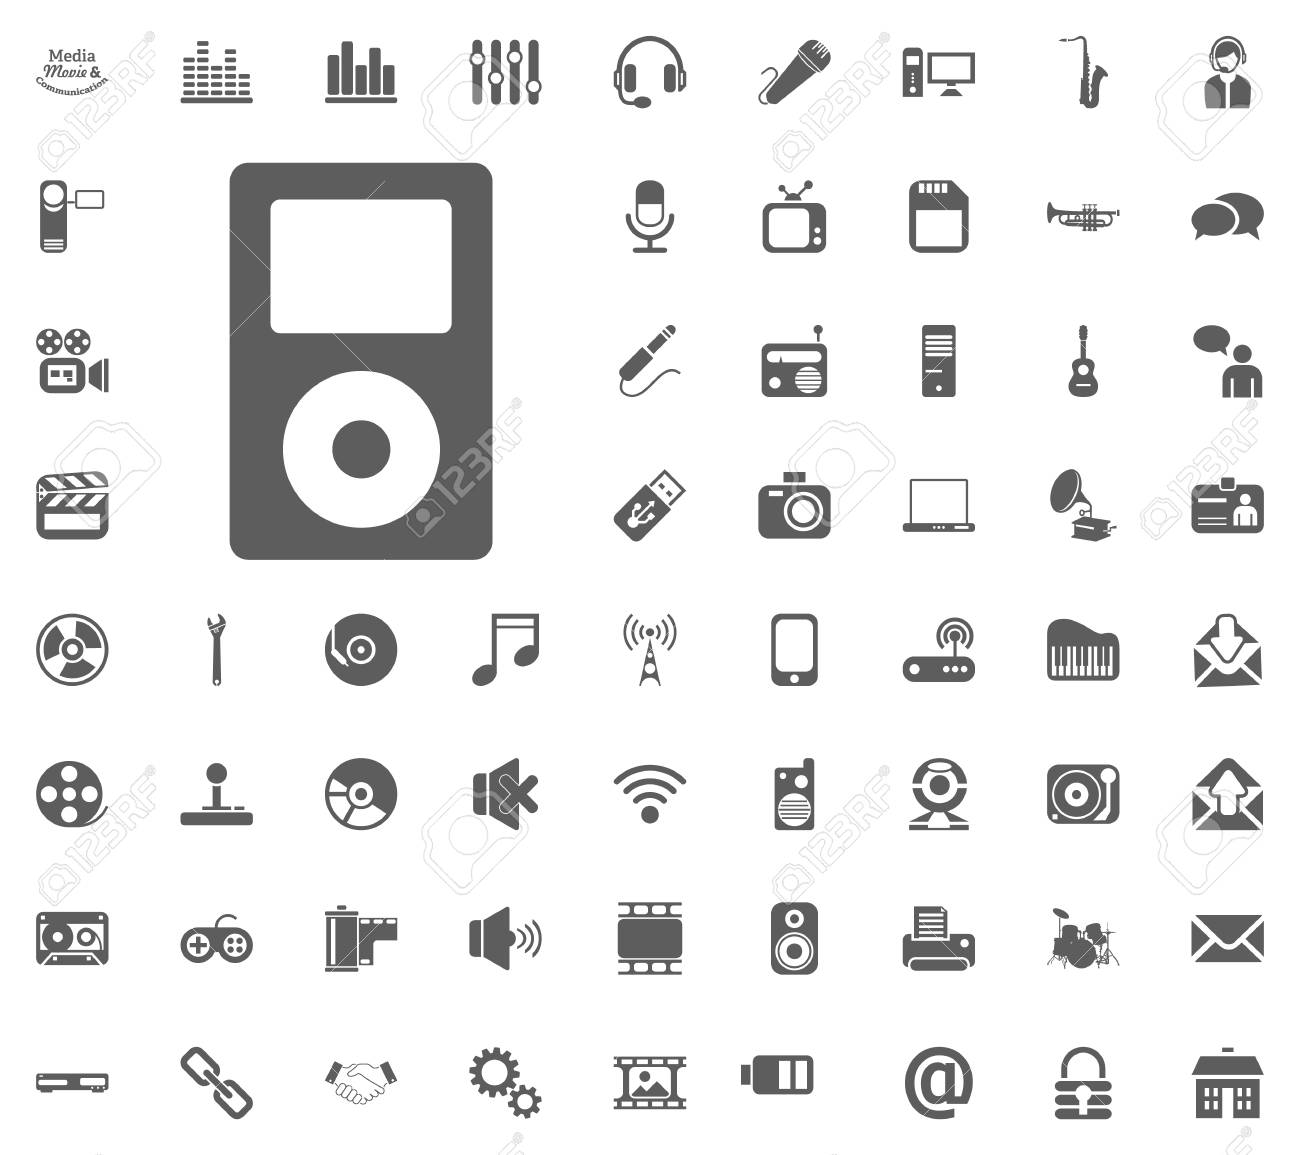 music player icon media music and communication vector illustration royalty free cliparts vectors and stock illustration image 94526170 music player icon media music and communication vector illustration